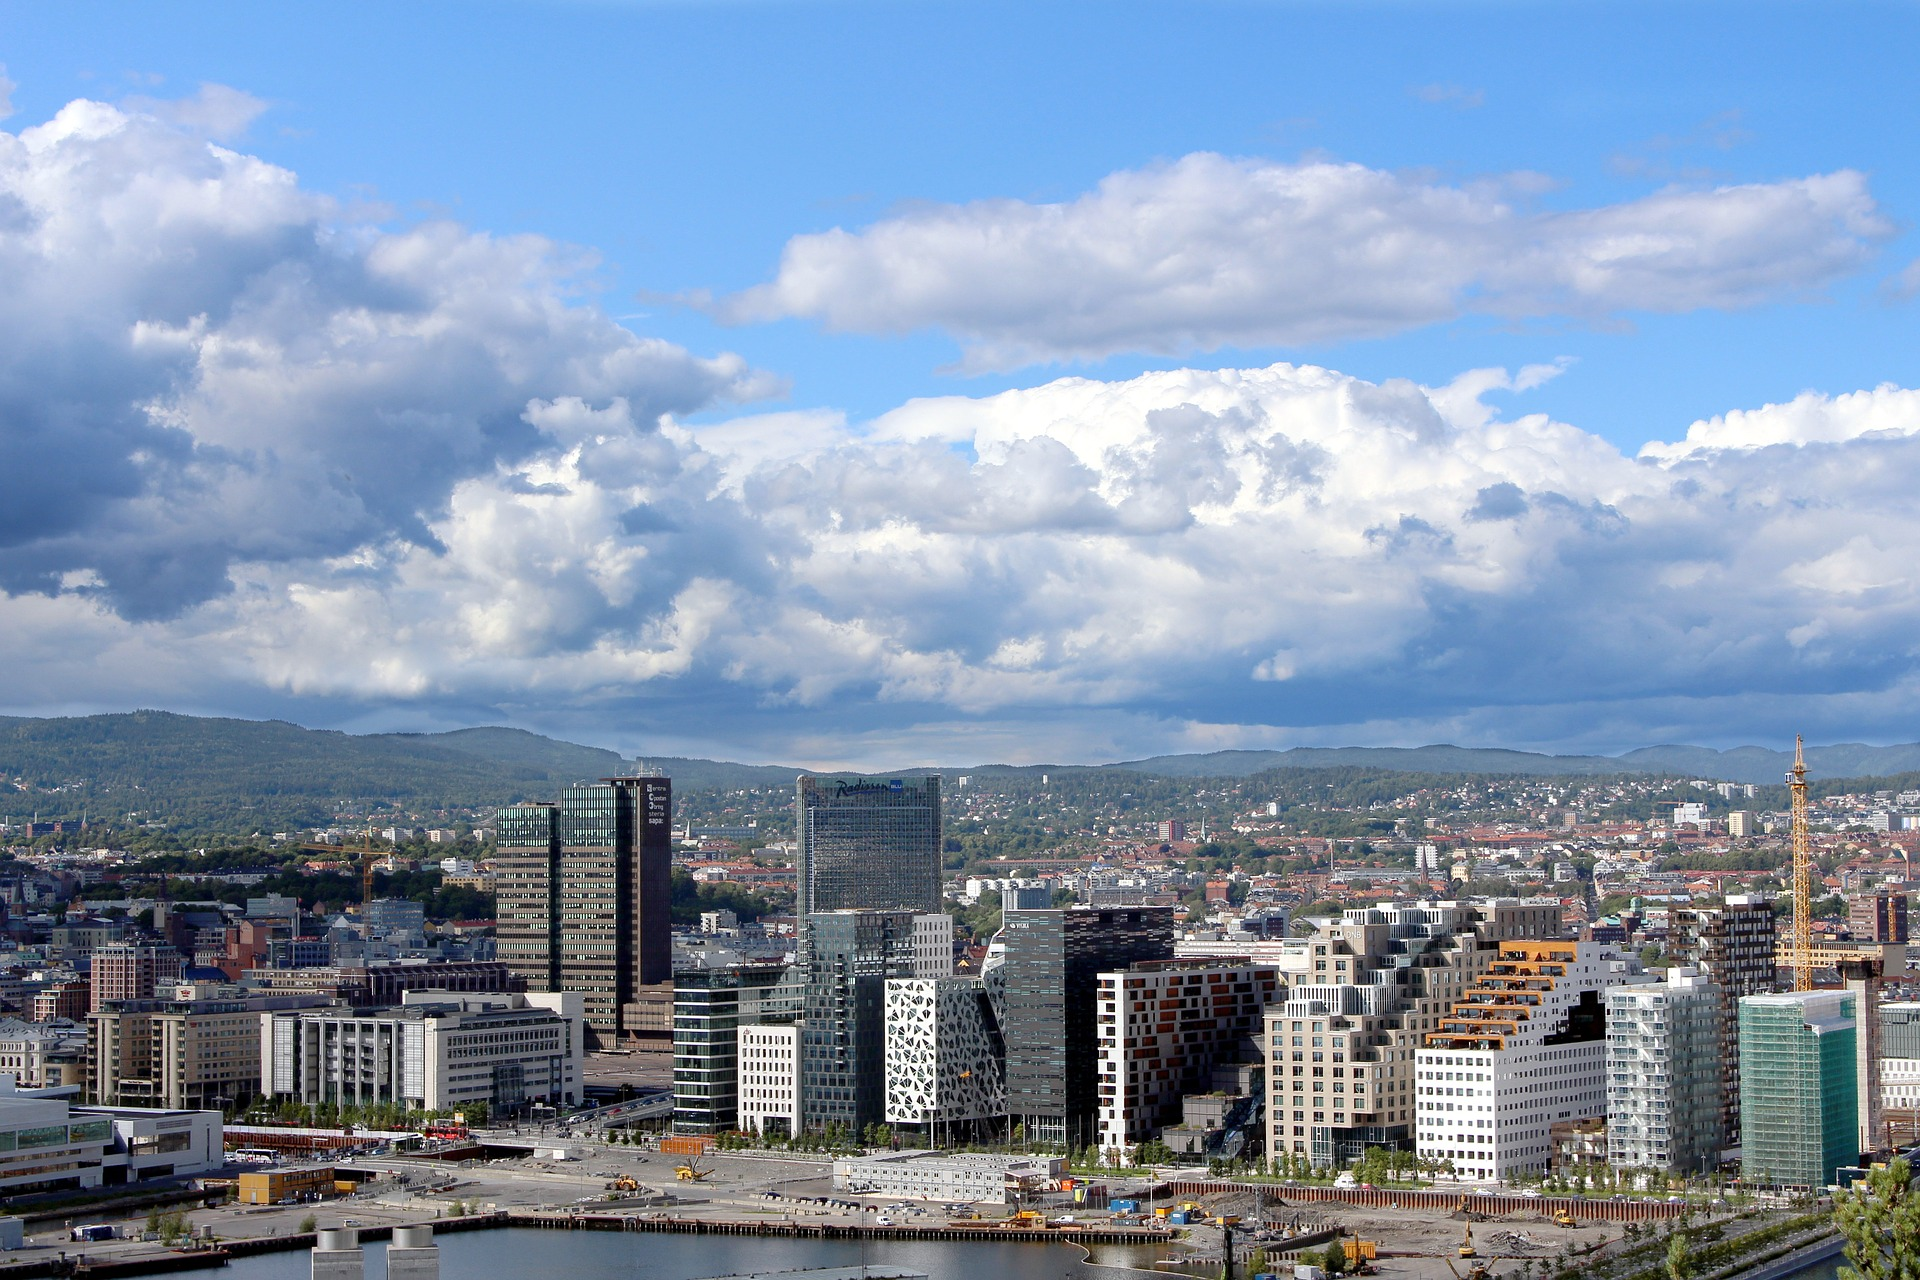 One day trip from Oslo